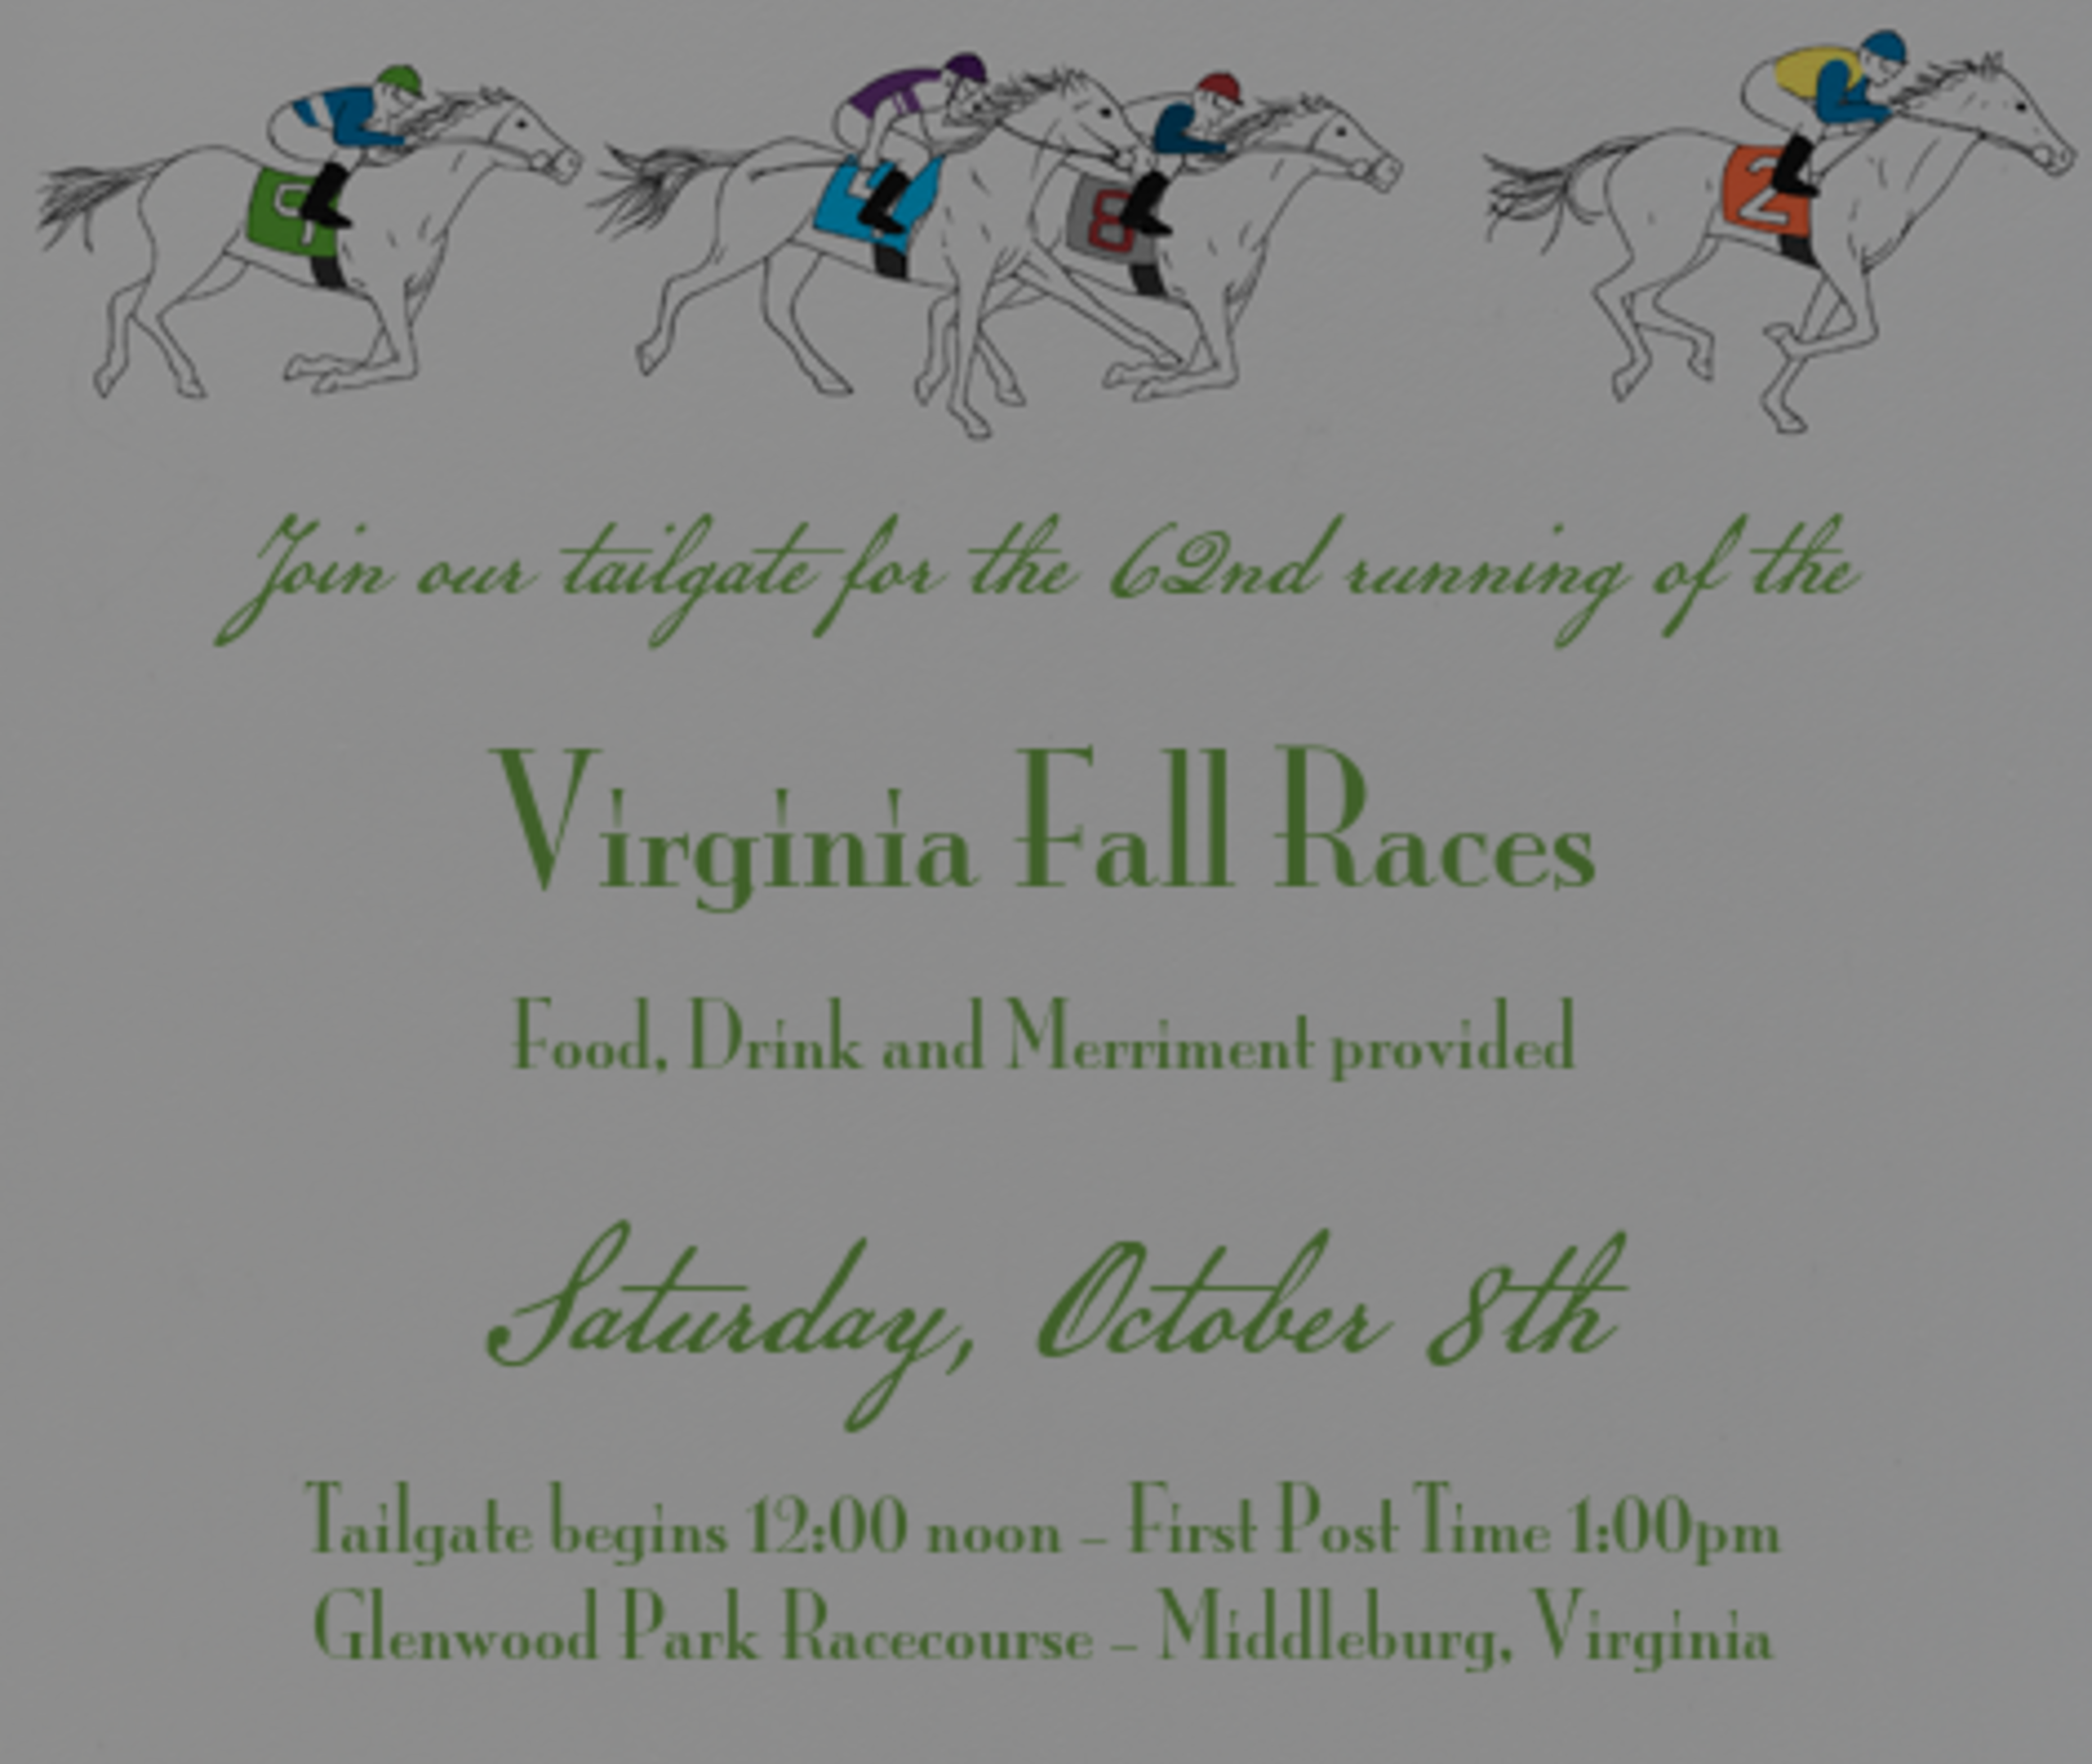 You are Invited! Virginia Fall Races